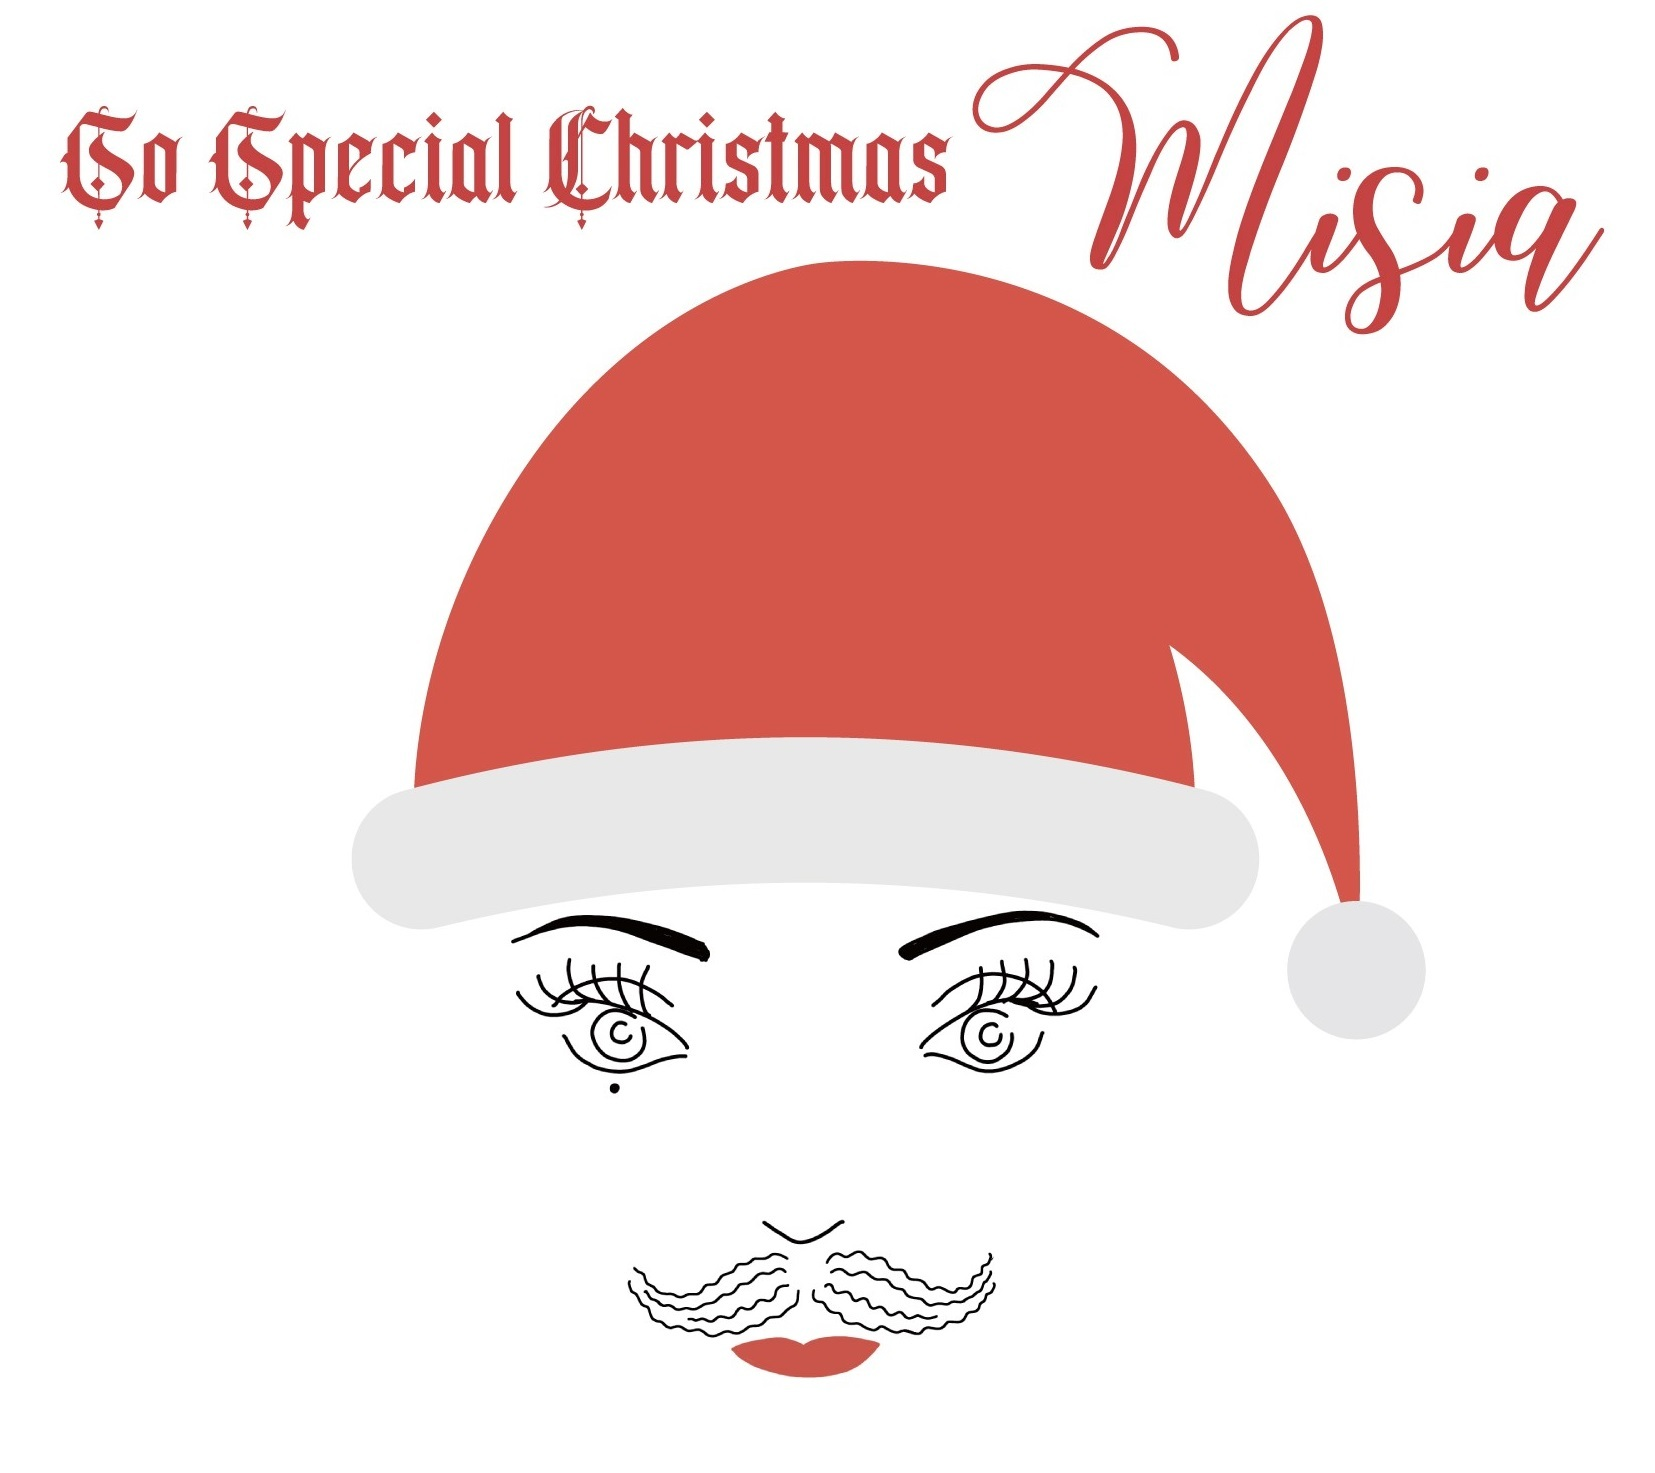 『So Special Christmas』ジャケット